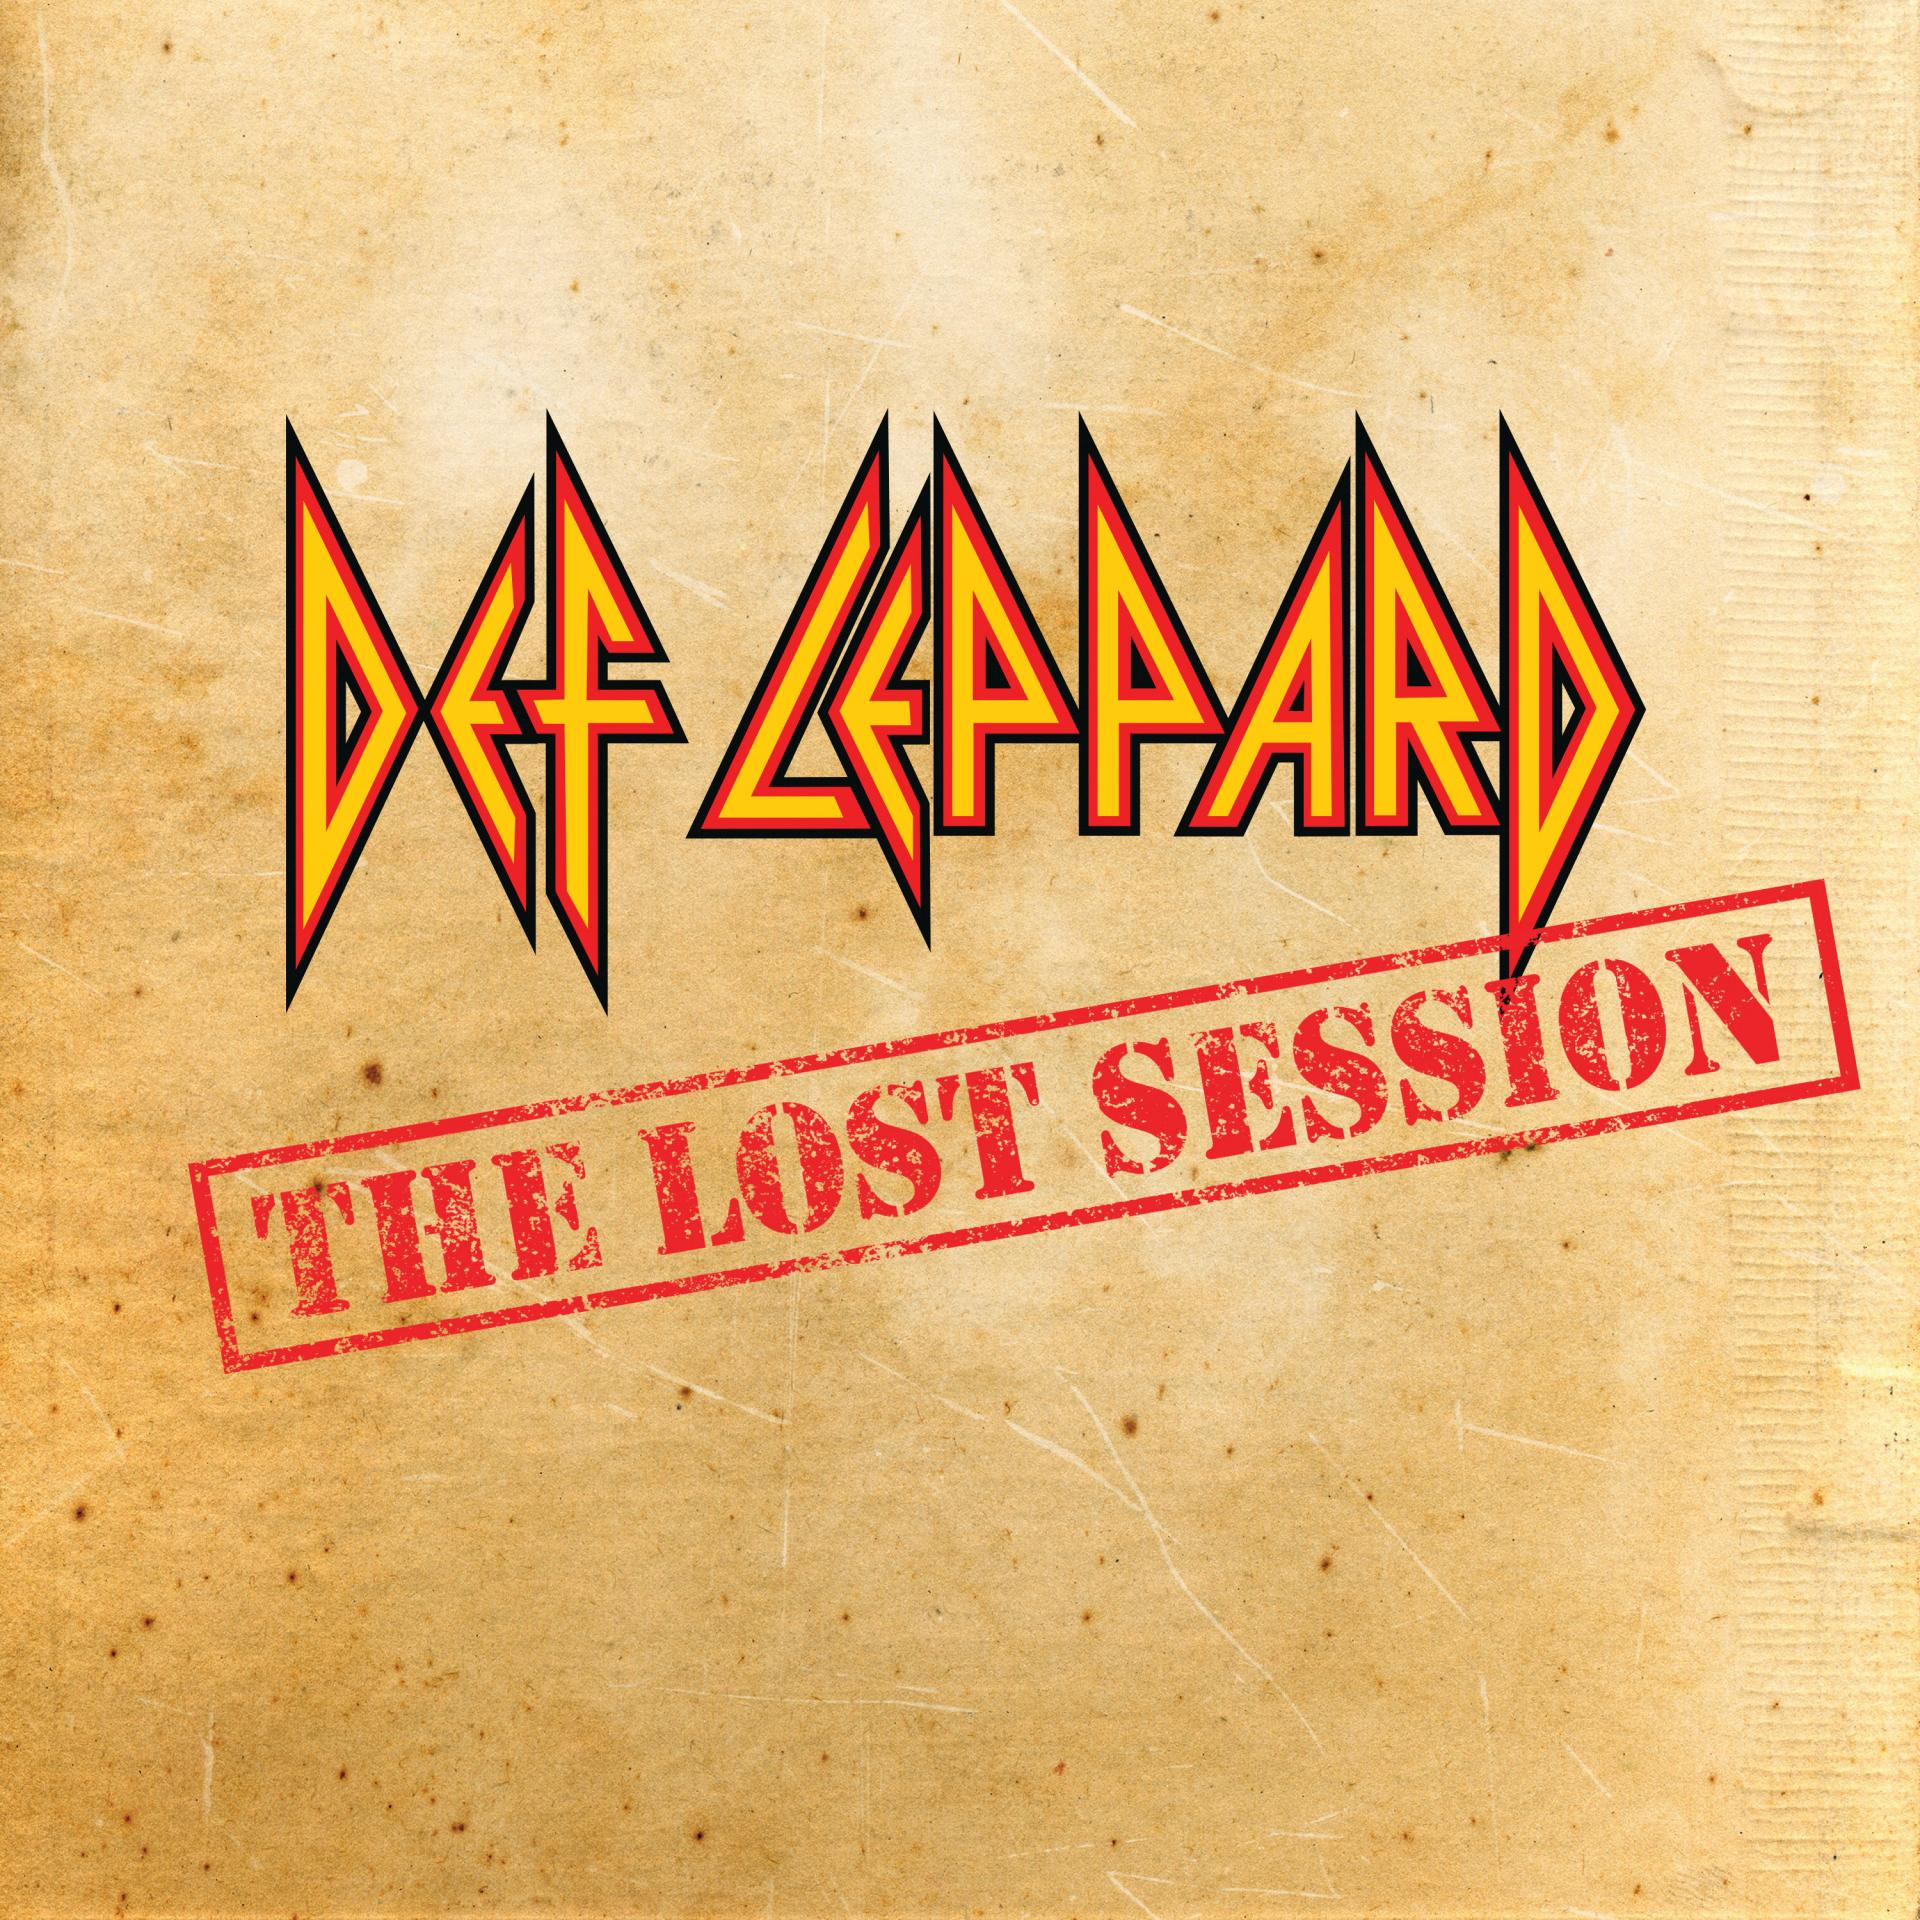 Stiahni si Hudba Def Leppard - The Lost Session (2018)